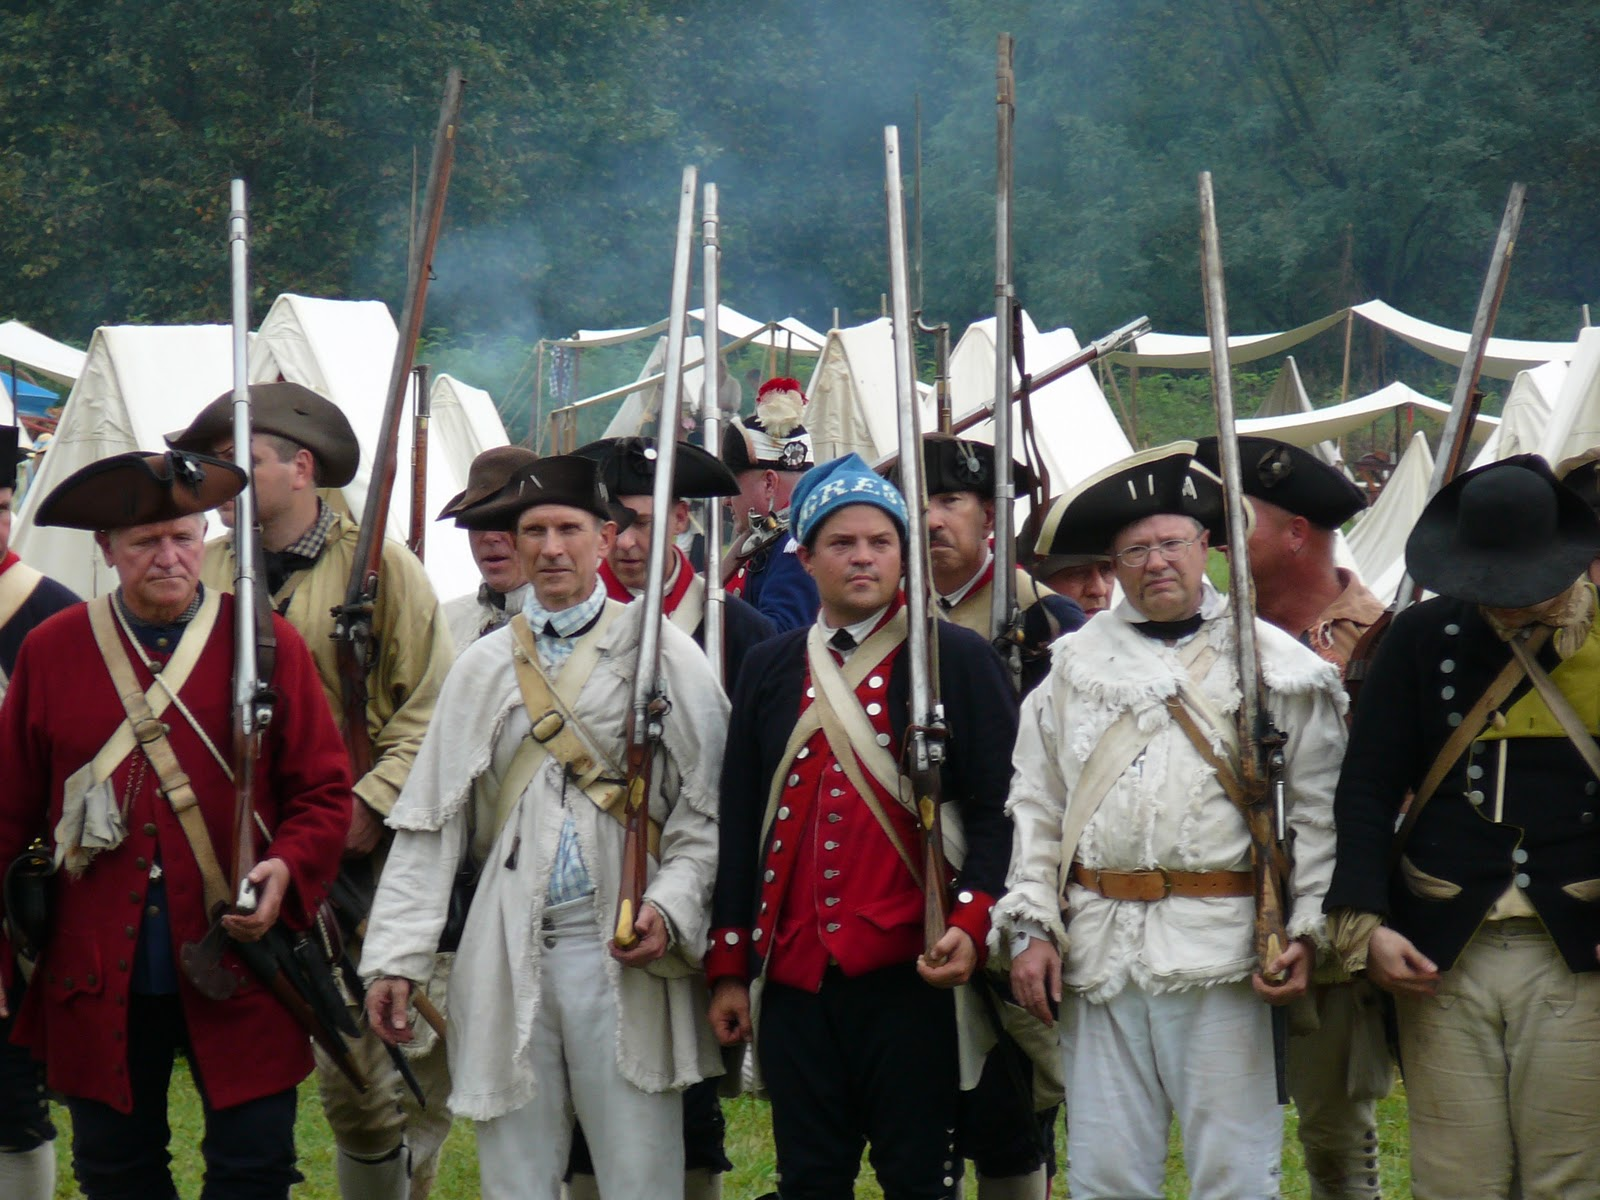 fort ogden men Rendezvous with history, meet mountain men at fort buenaventura friday , march 25, 2016 march 27, mountain-man gathering at ogden's fort buenaventura related.